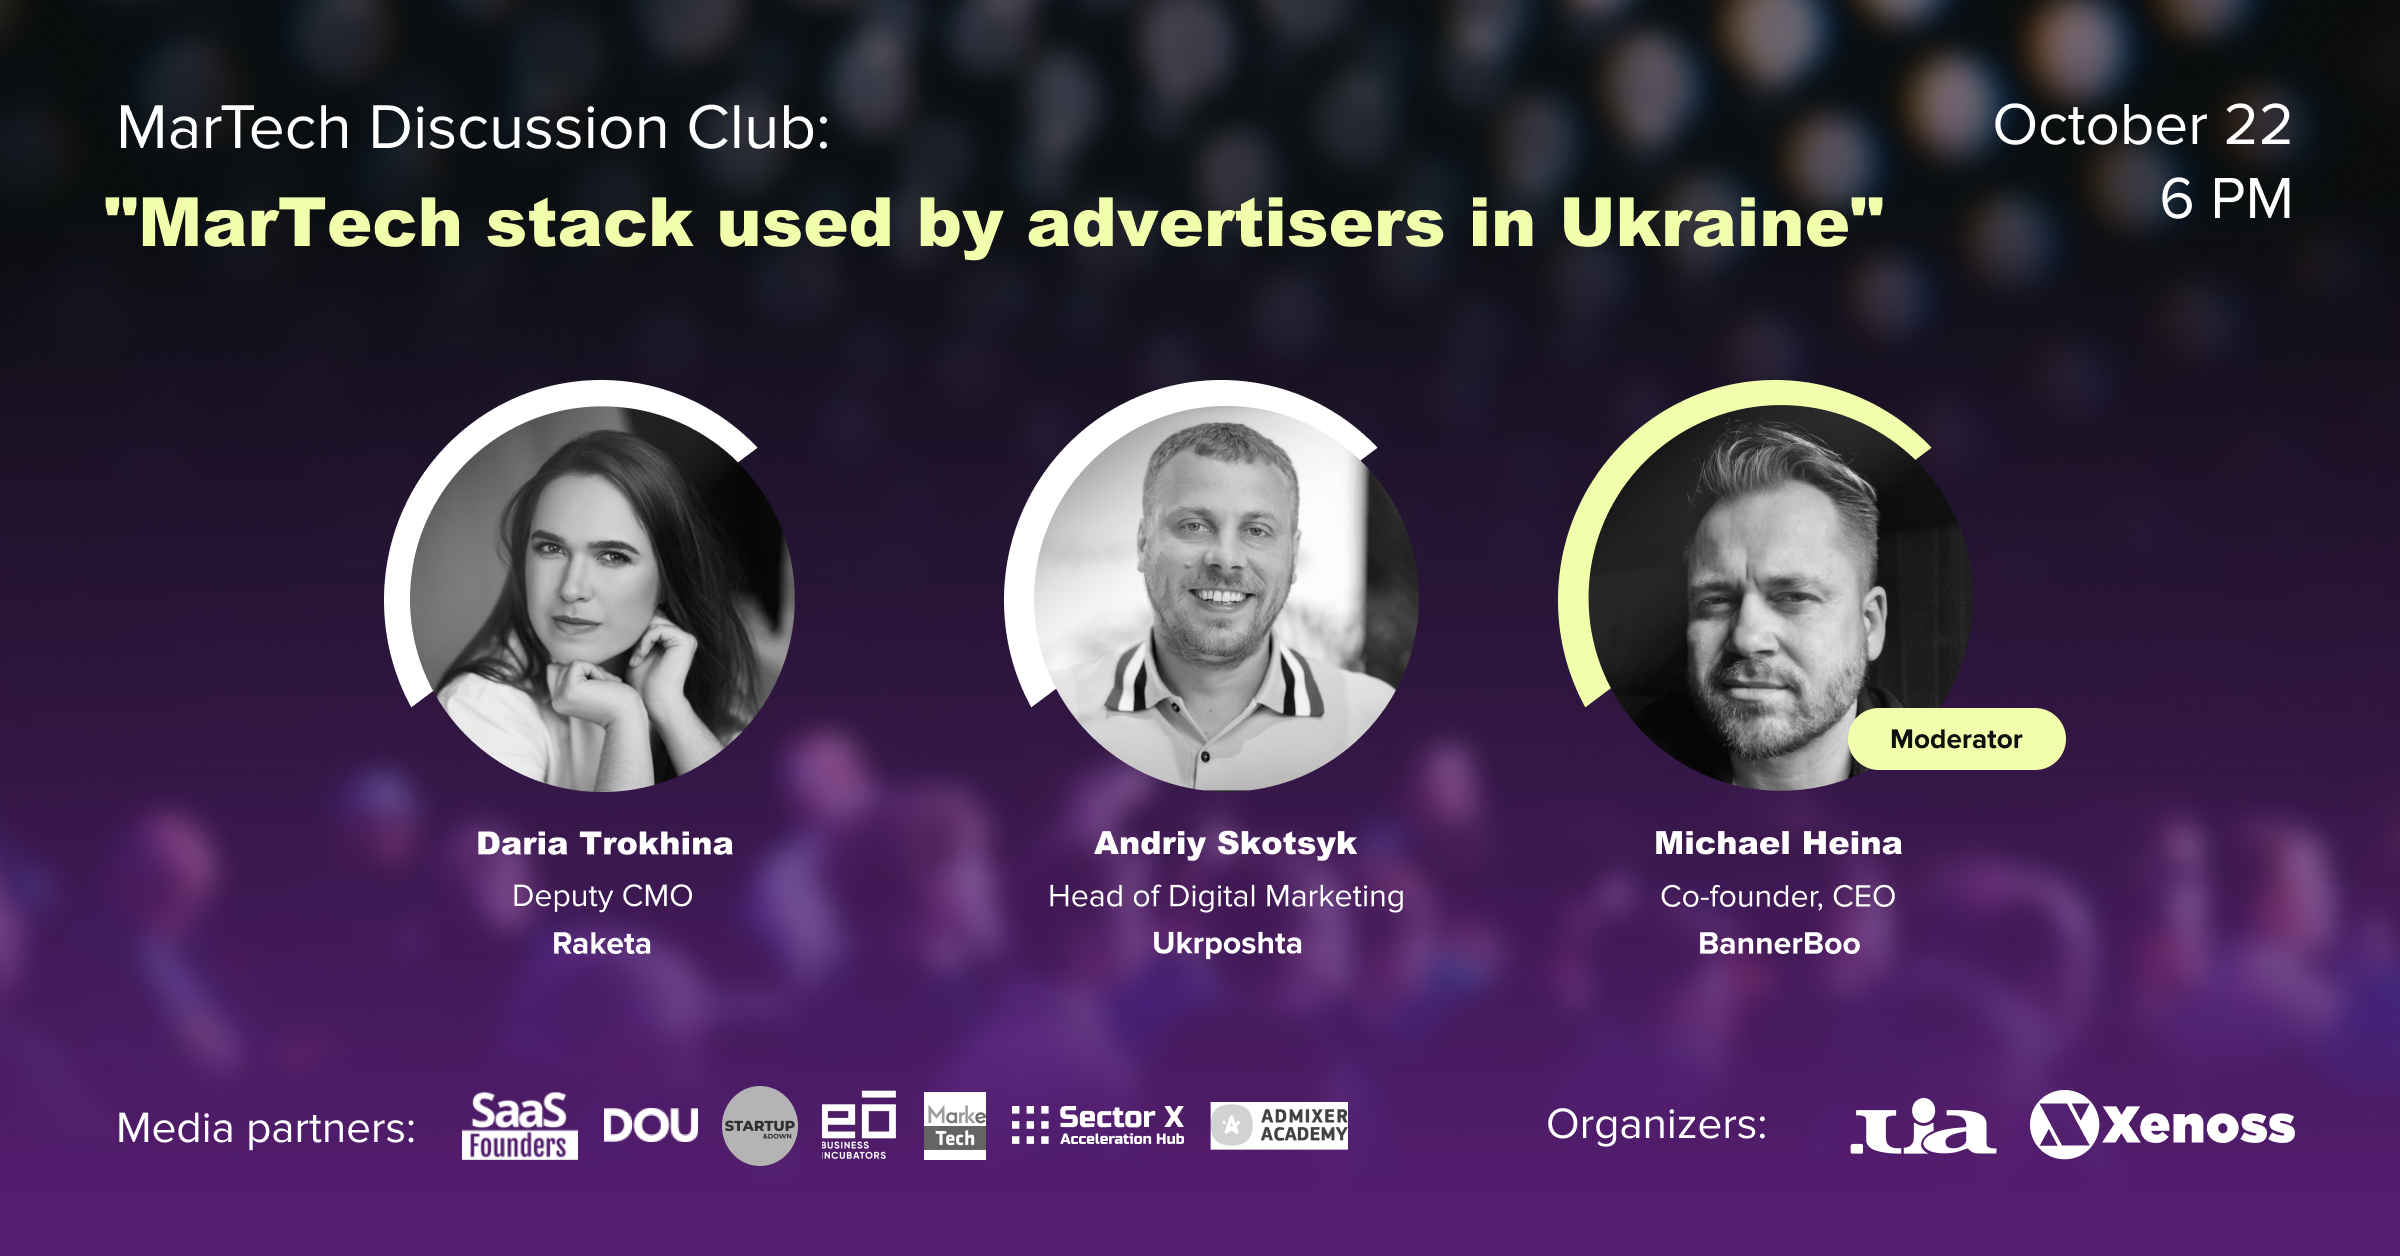 MarTech Discussion Club: MarTech stack used by advertisers in Ukraine